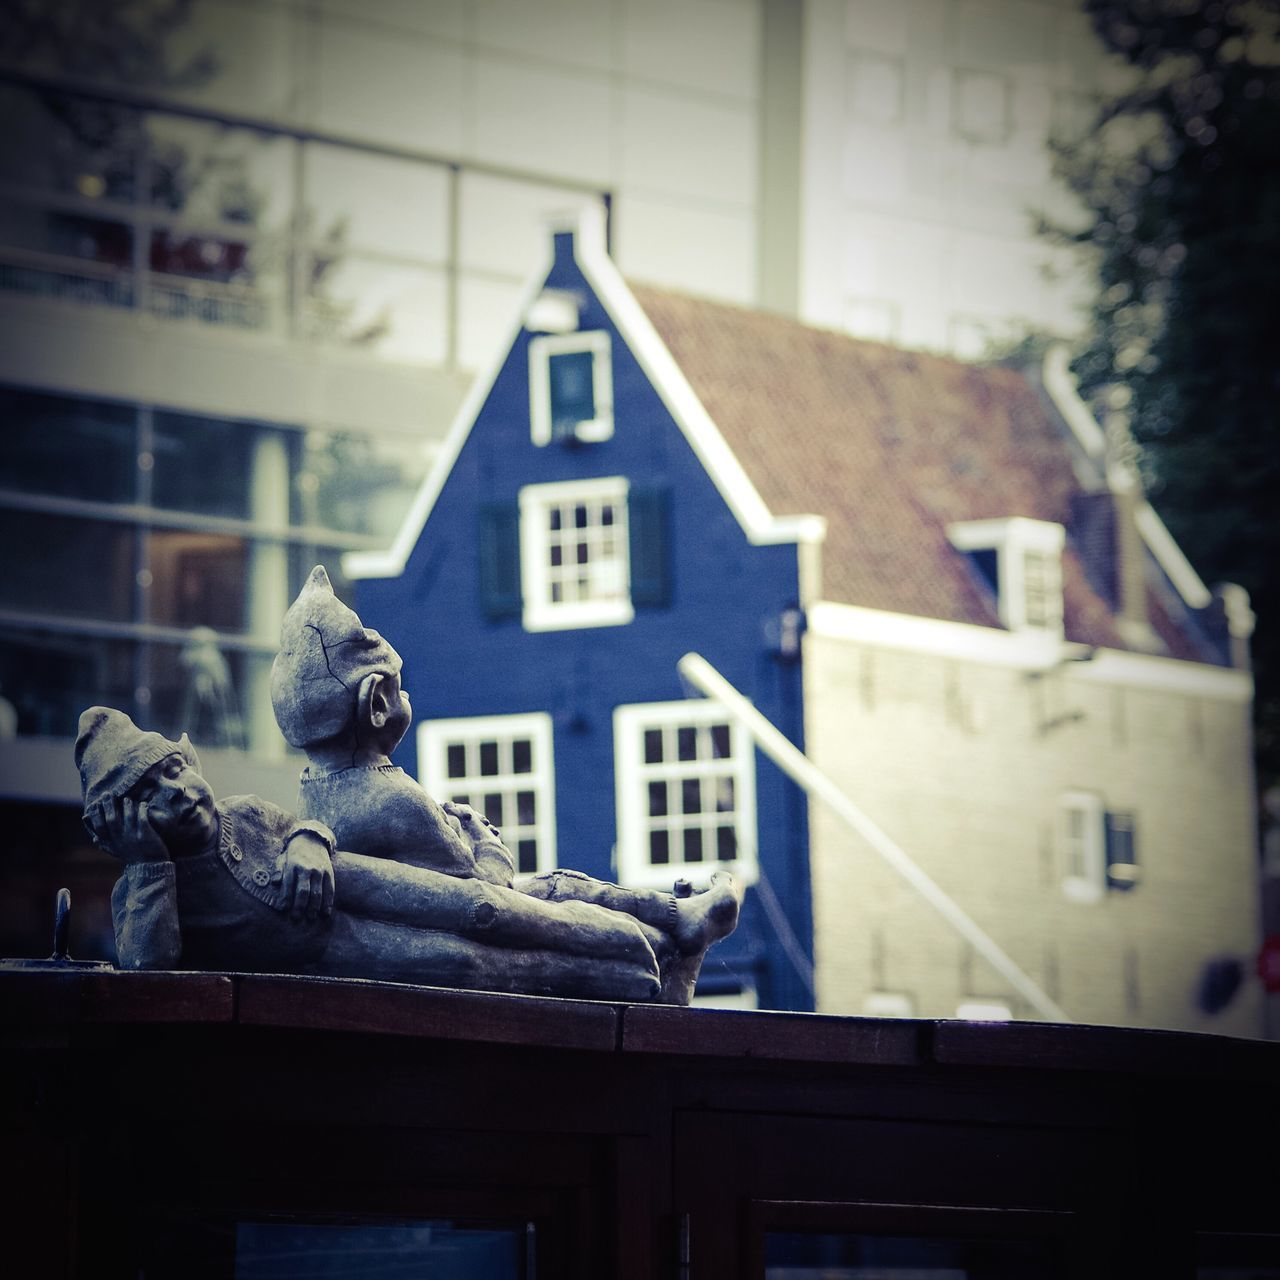 Building Exterior Architecture Built Structure Art And Craft Window No People Sculpture Human Representation One Animal Outdoors Day Statue Animals In The Wild Bird Amsterdam